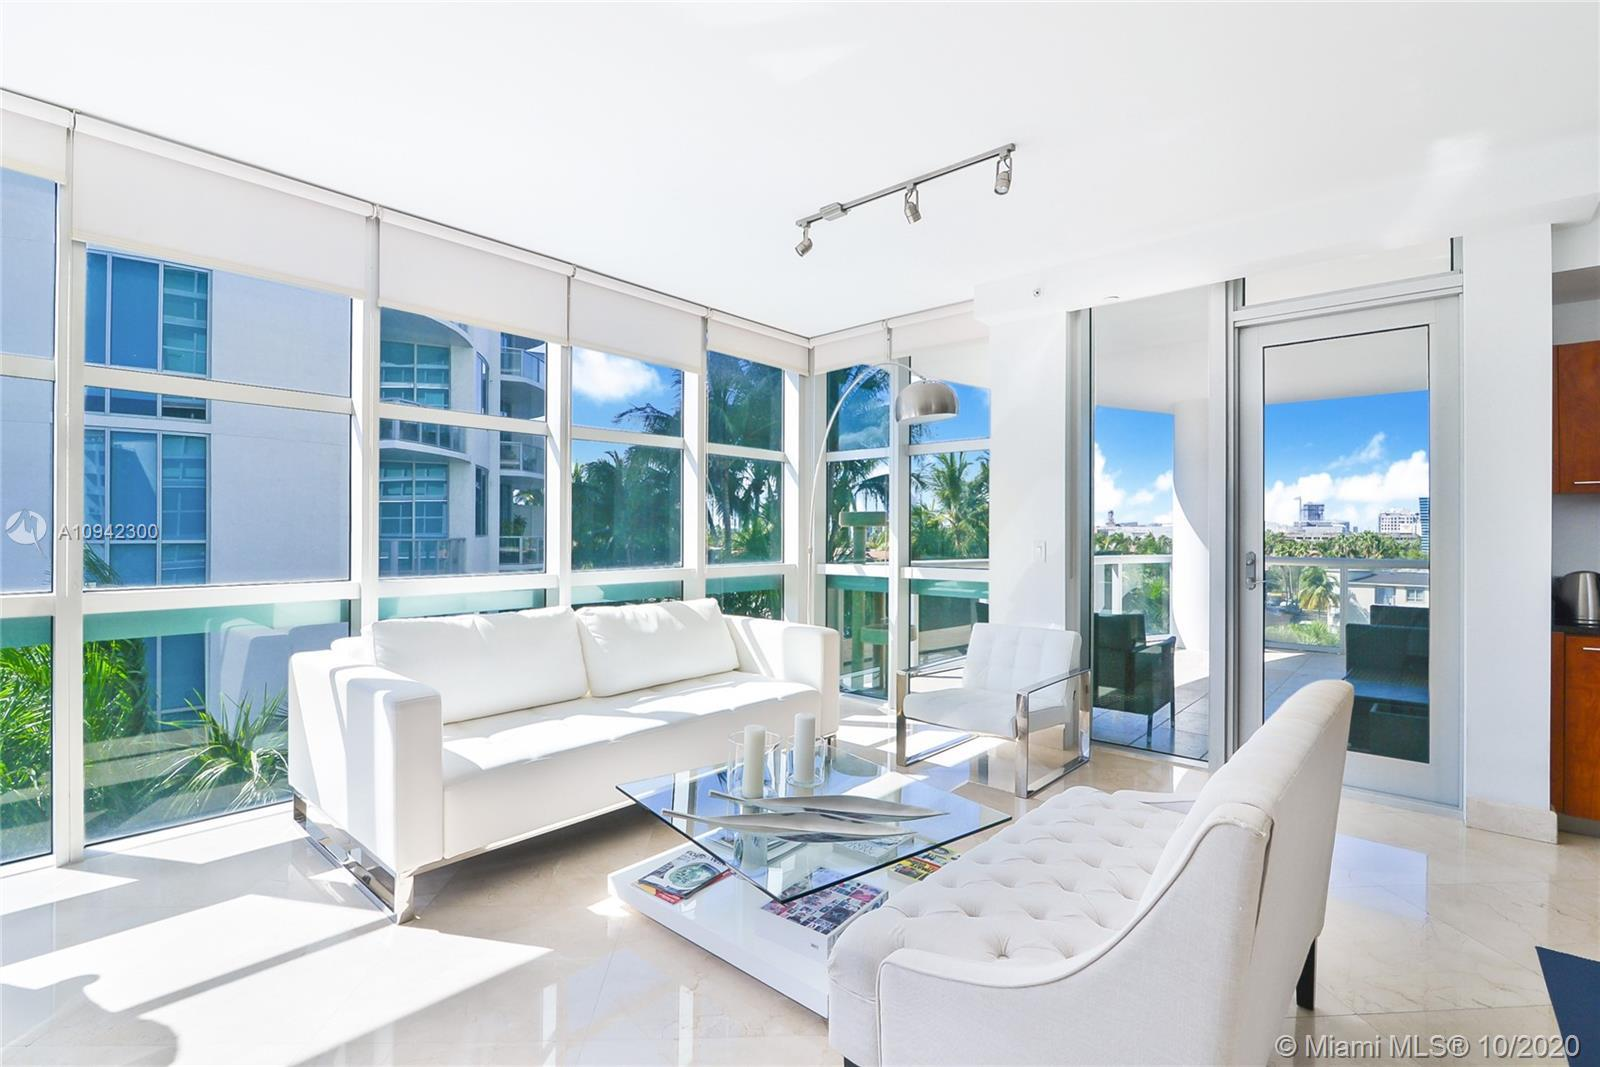 Amazing unit in Atrium Aventura, 3 Bedrooms + 2.5 Baths, great views, floor to ceiling impact window